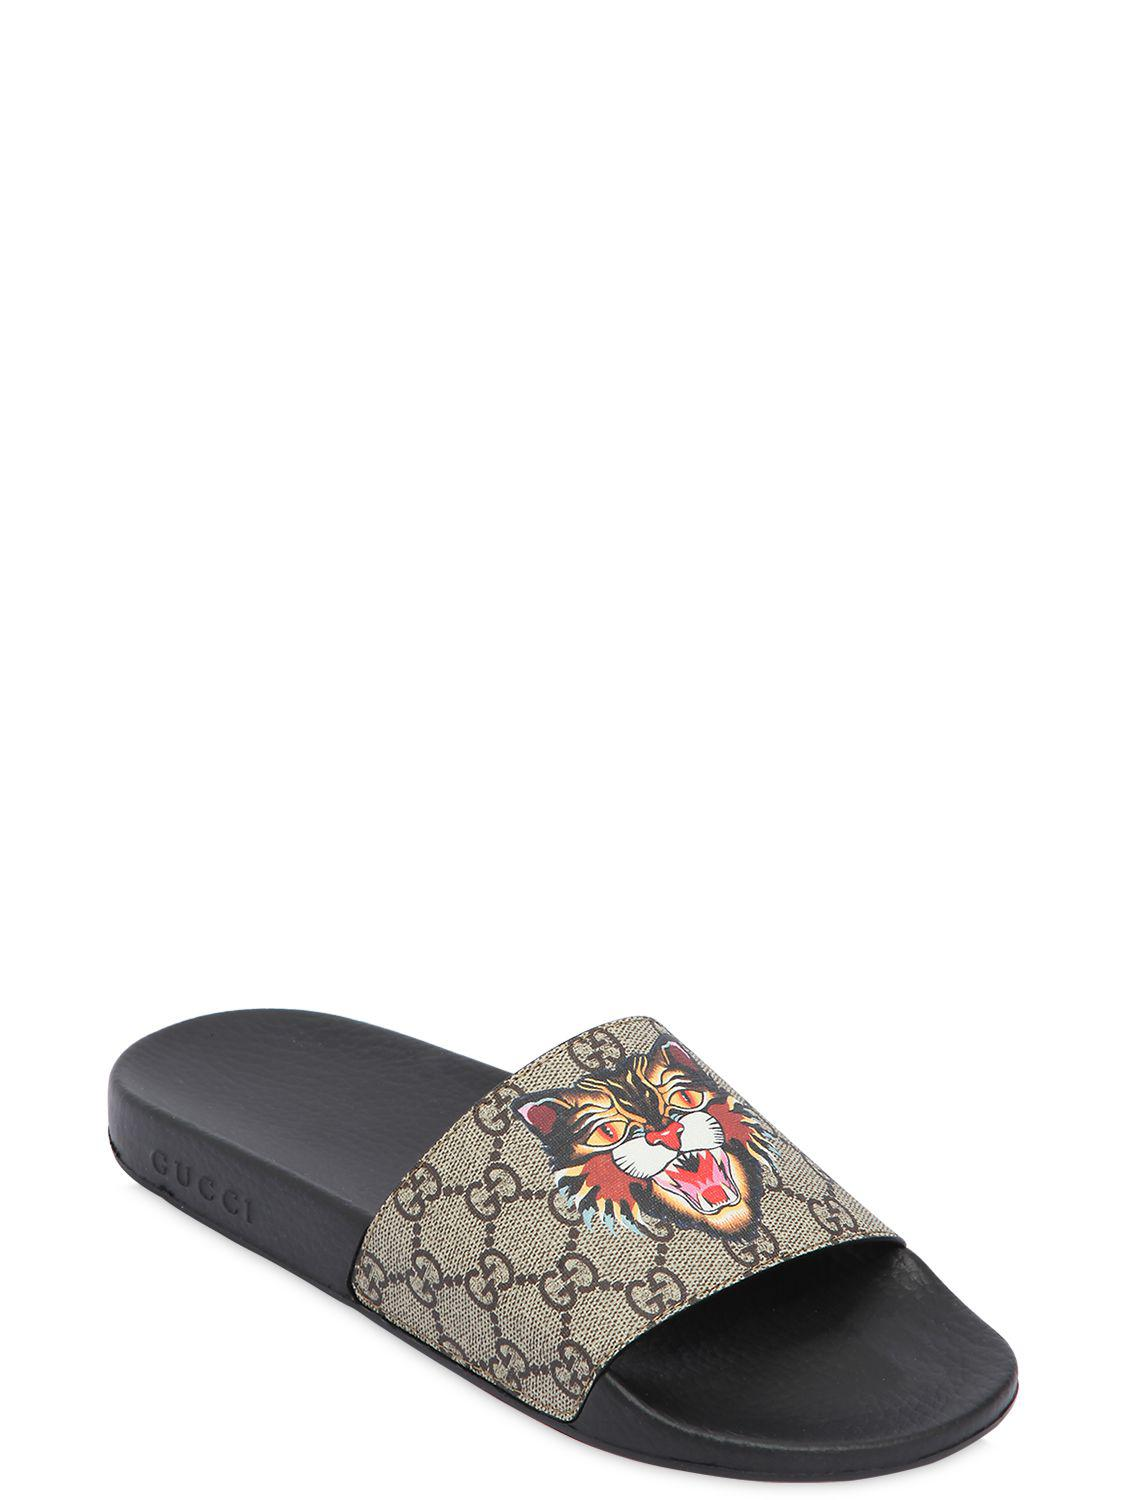 fc43e4f01bbb Gucci Gg Supreme Angry Cat Slide Sandals - Lyst